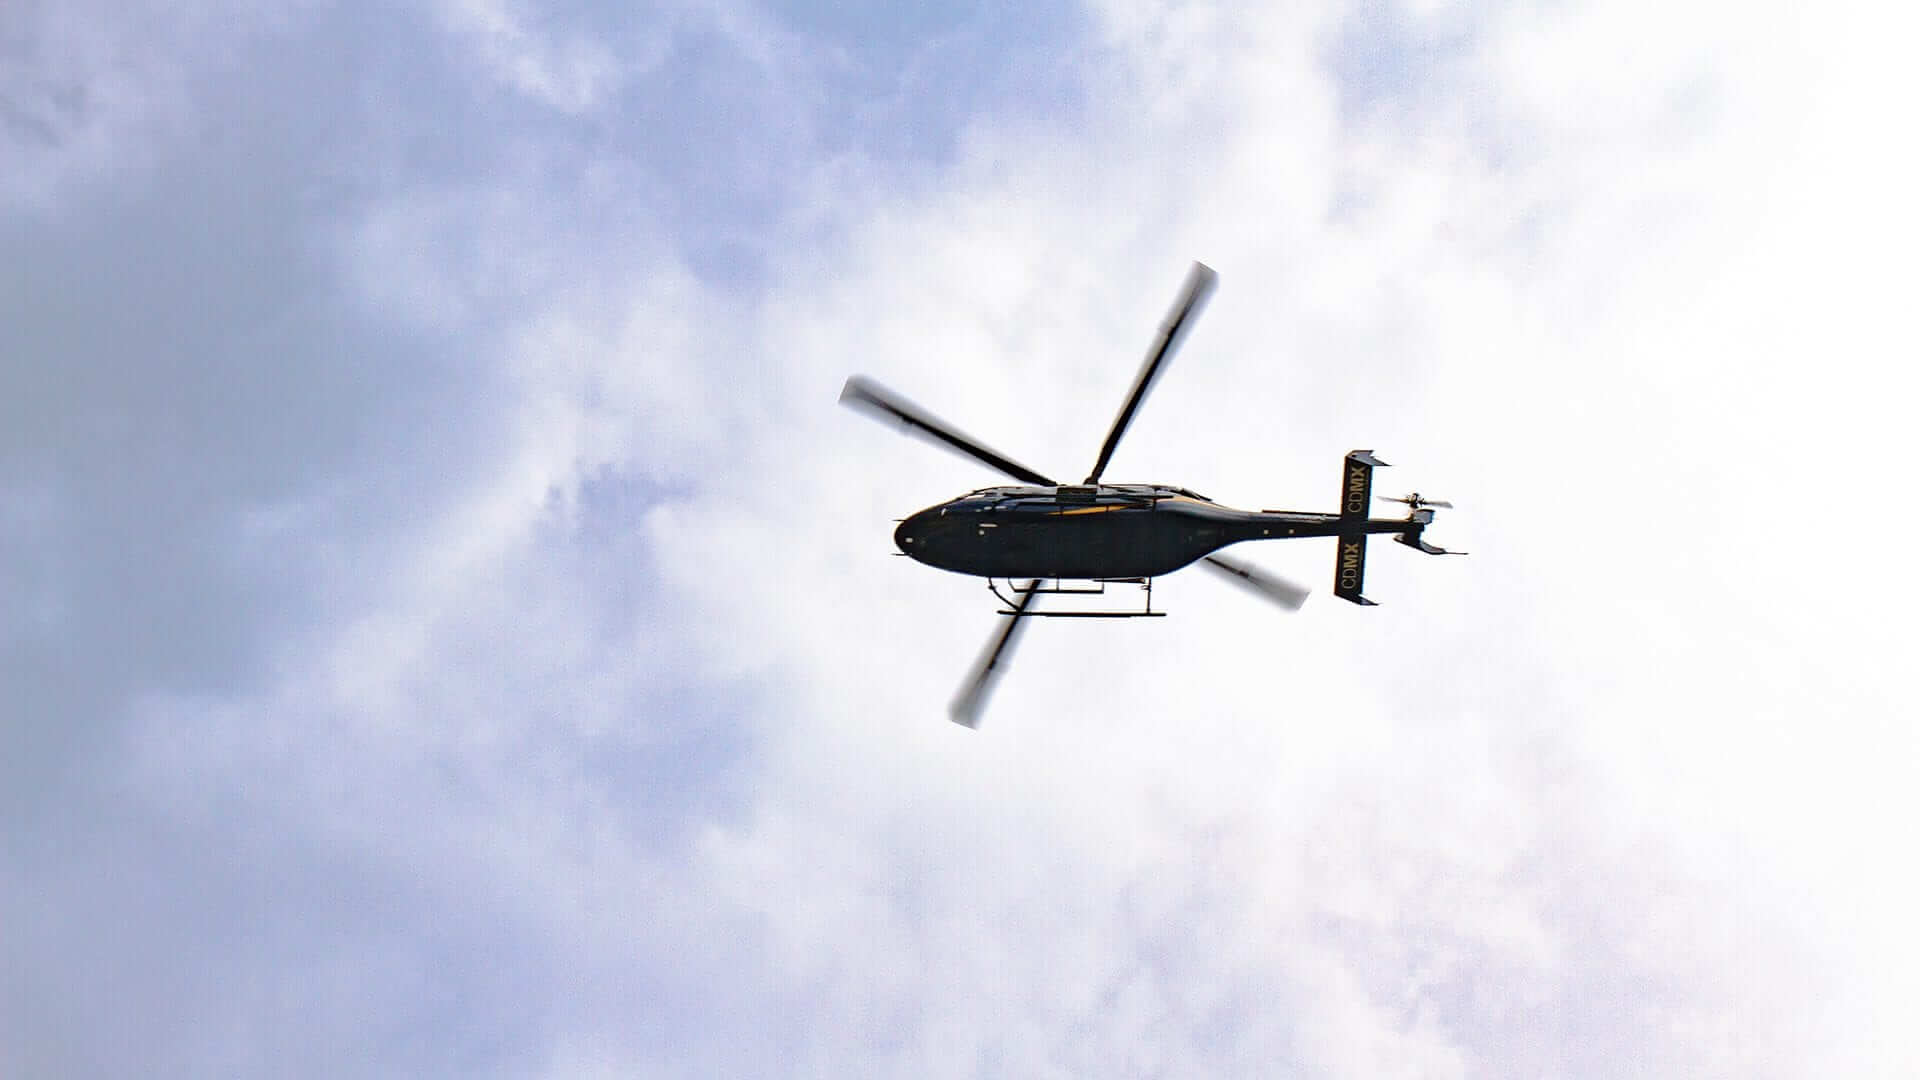 A flying helicopter seen from below